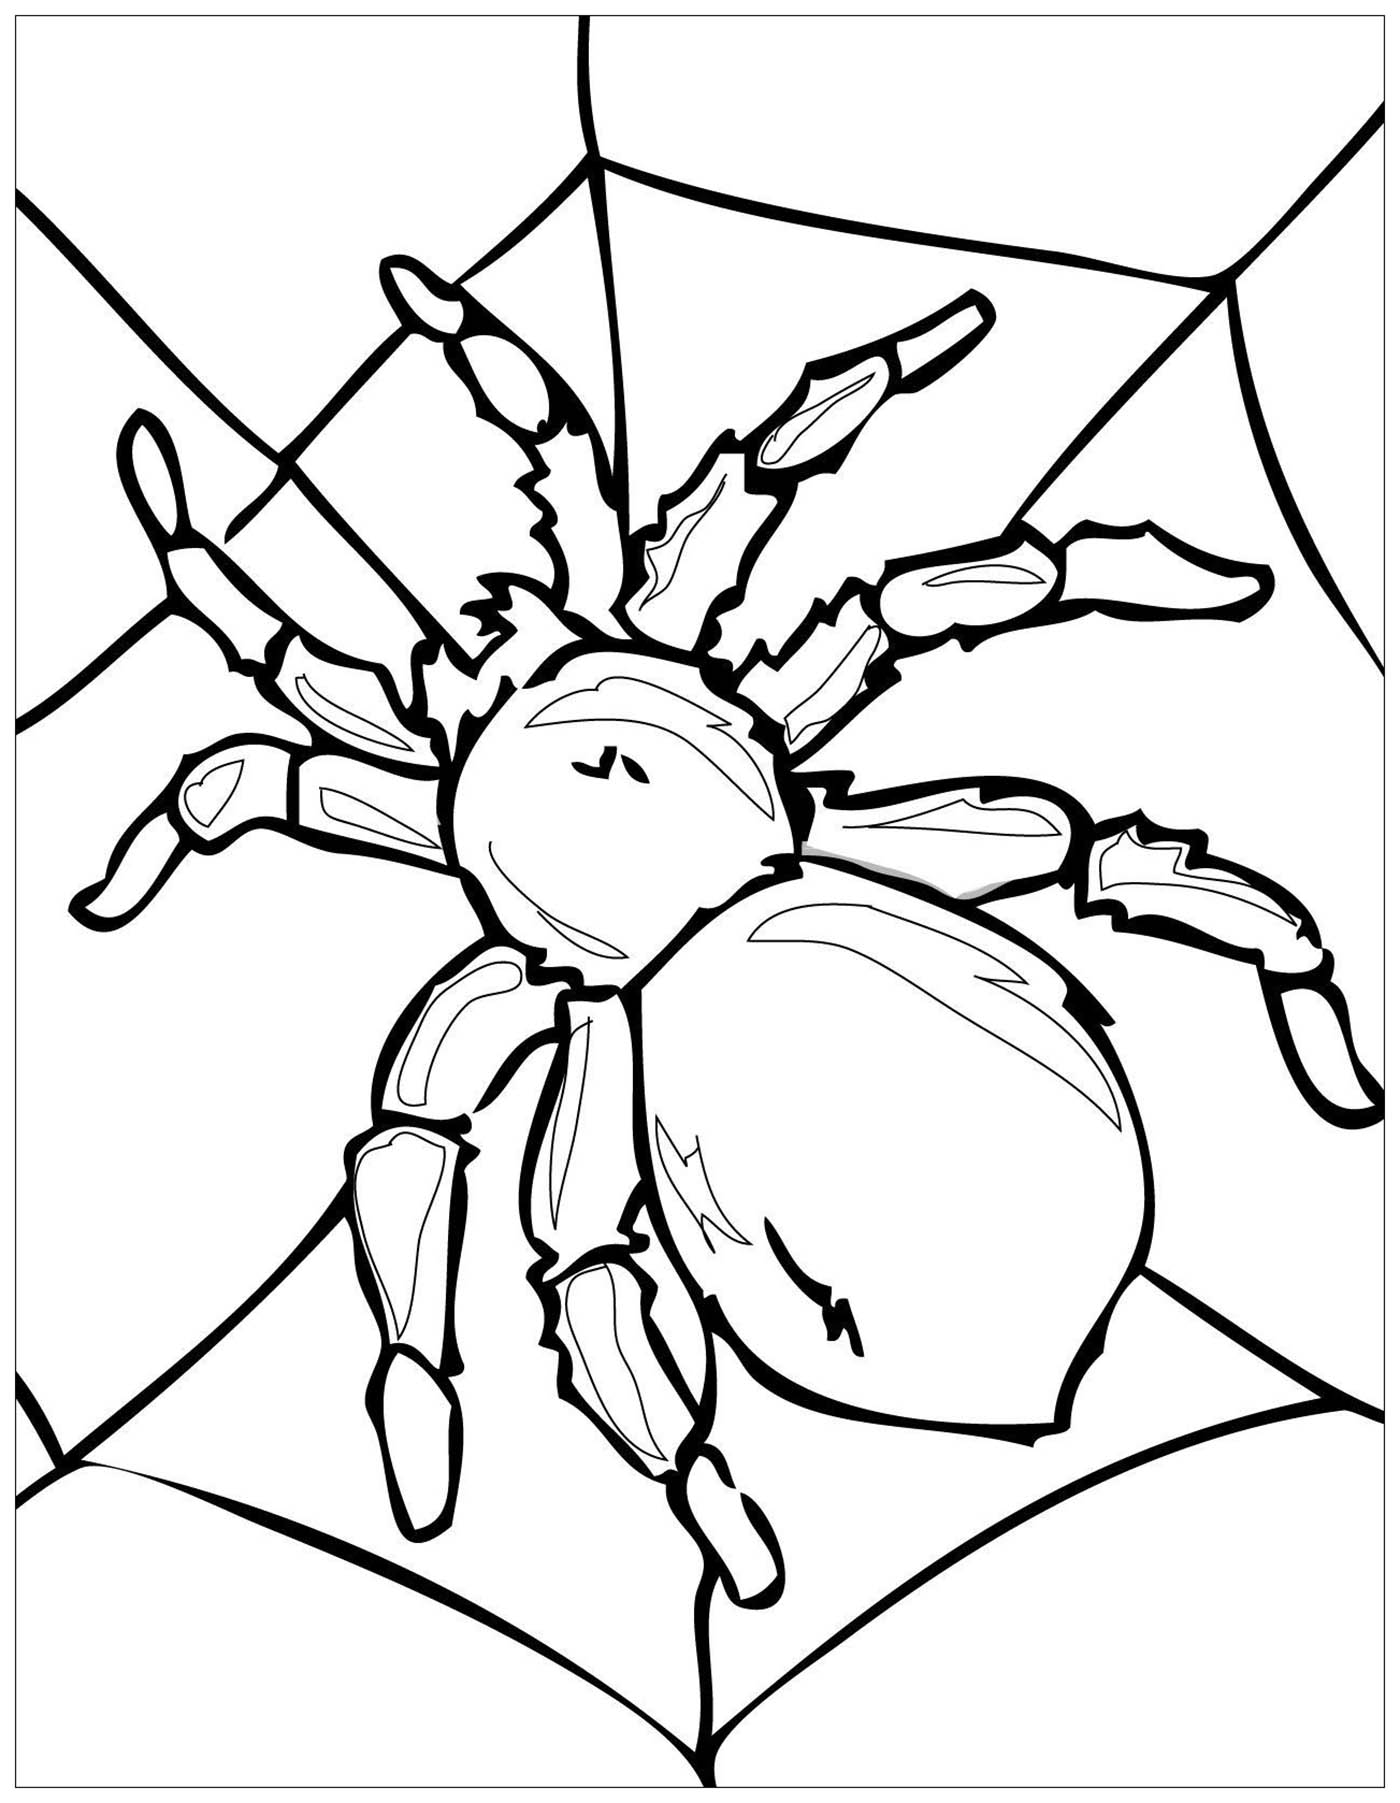 insect coloring pages realistic insect coloring pages realistic coloring pages insect pages coloring